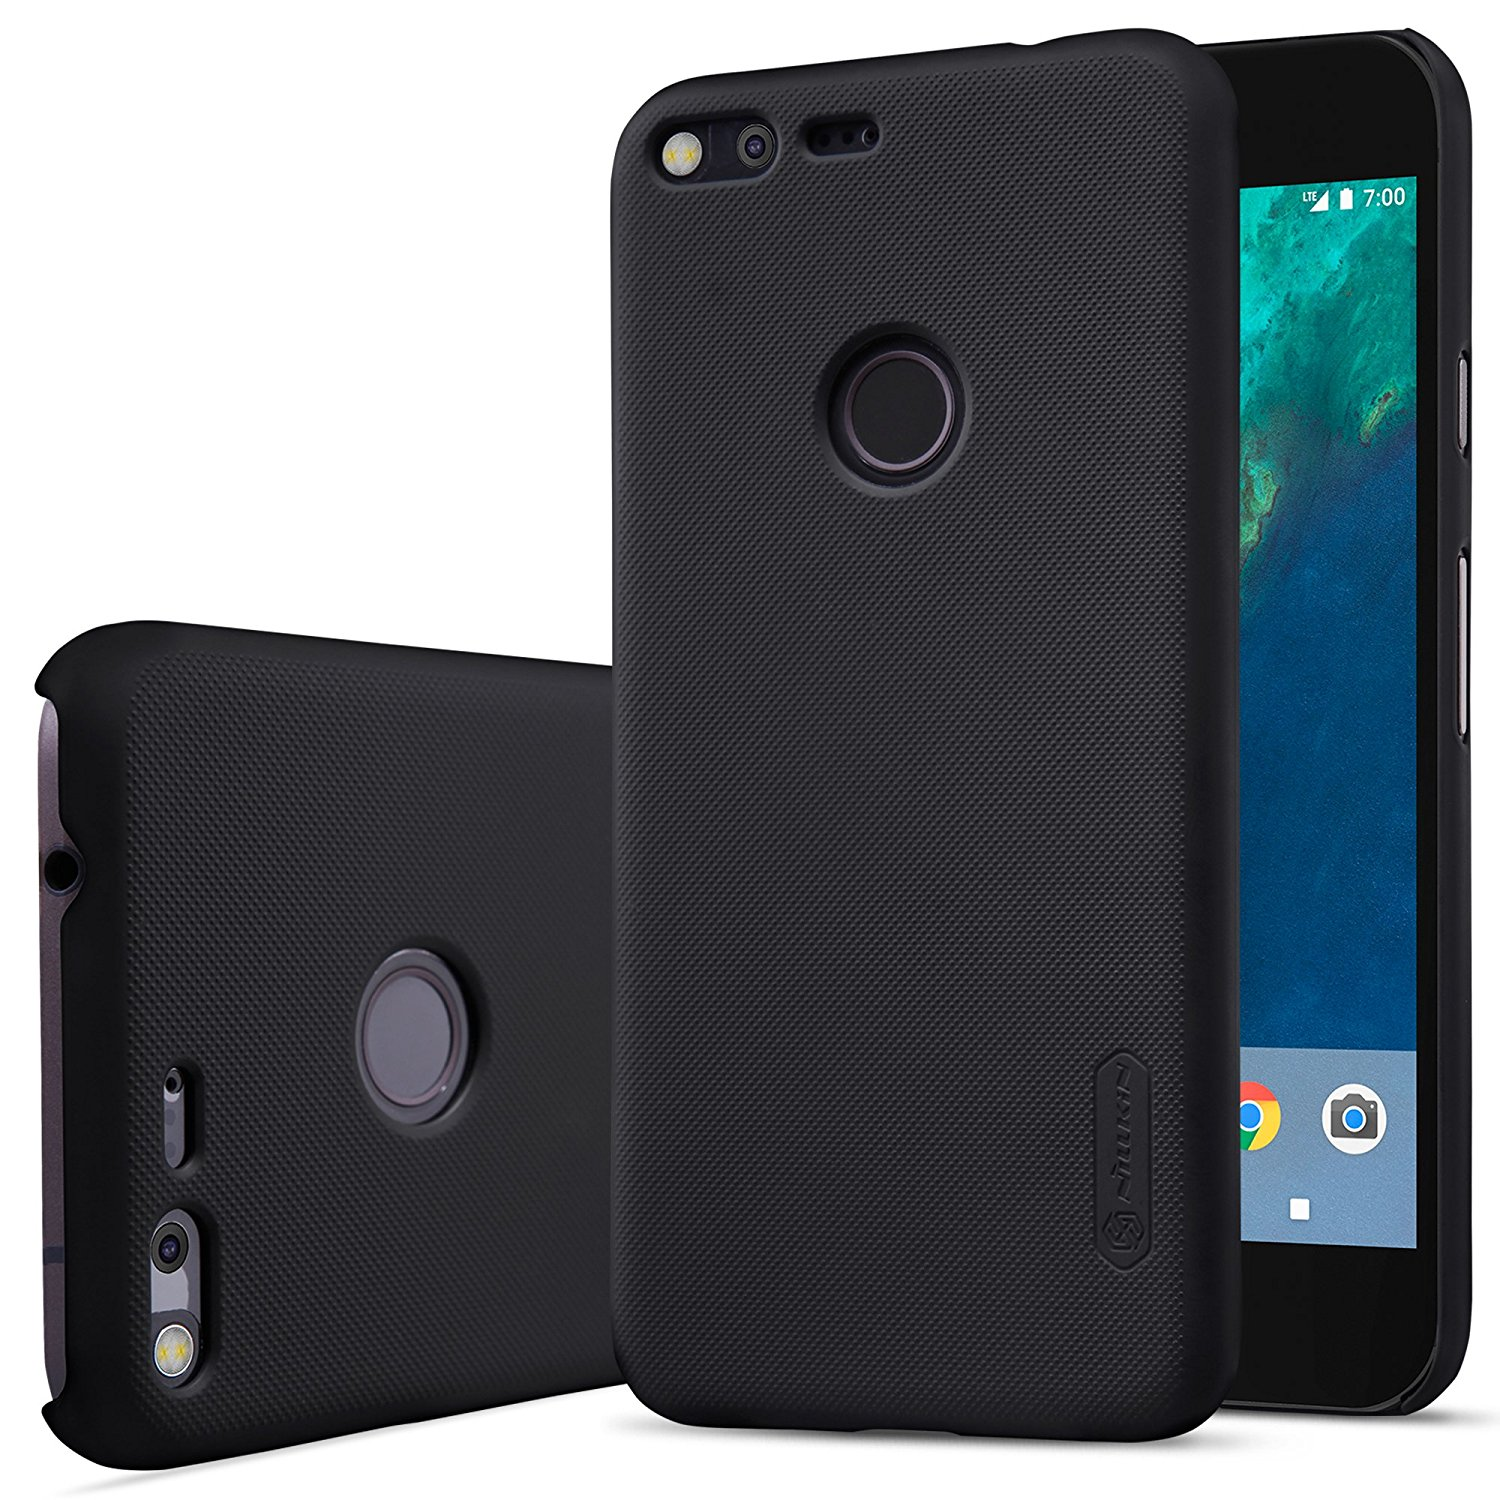 Nillkin Frosted Hard Case Google Pixel - Casing Cover - Hitam